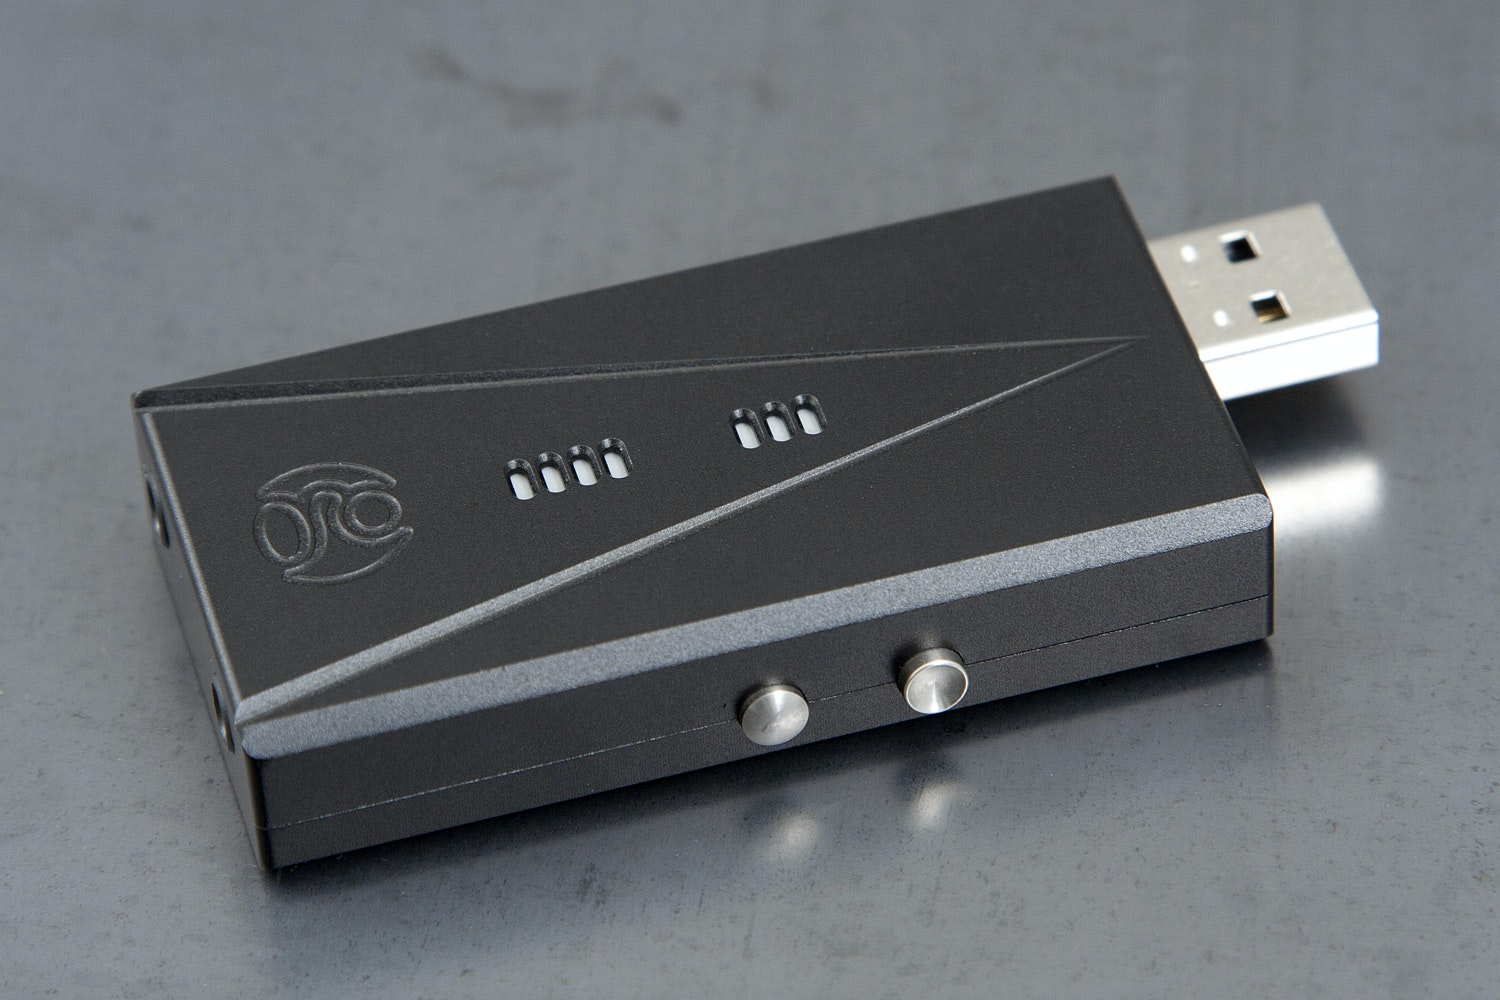 Geek Out 720 USB DAC/Amp